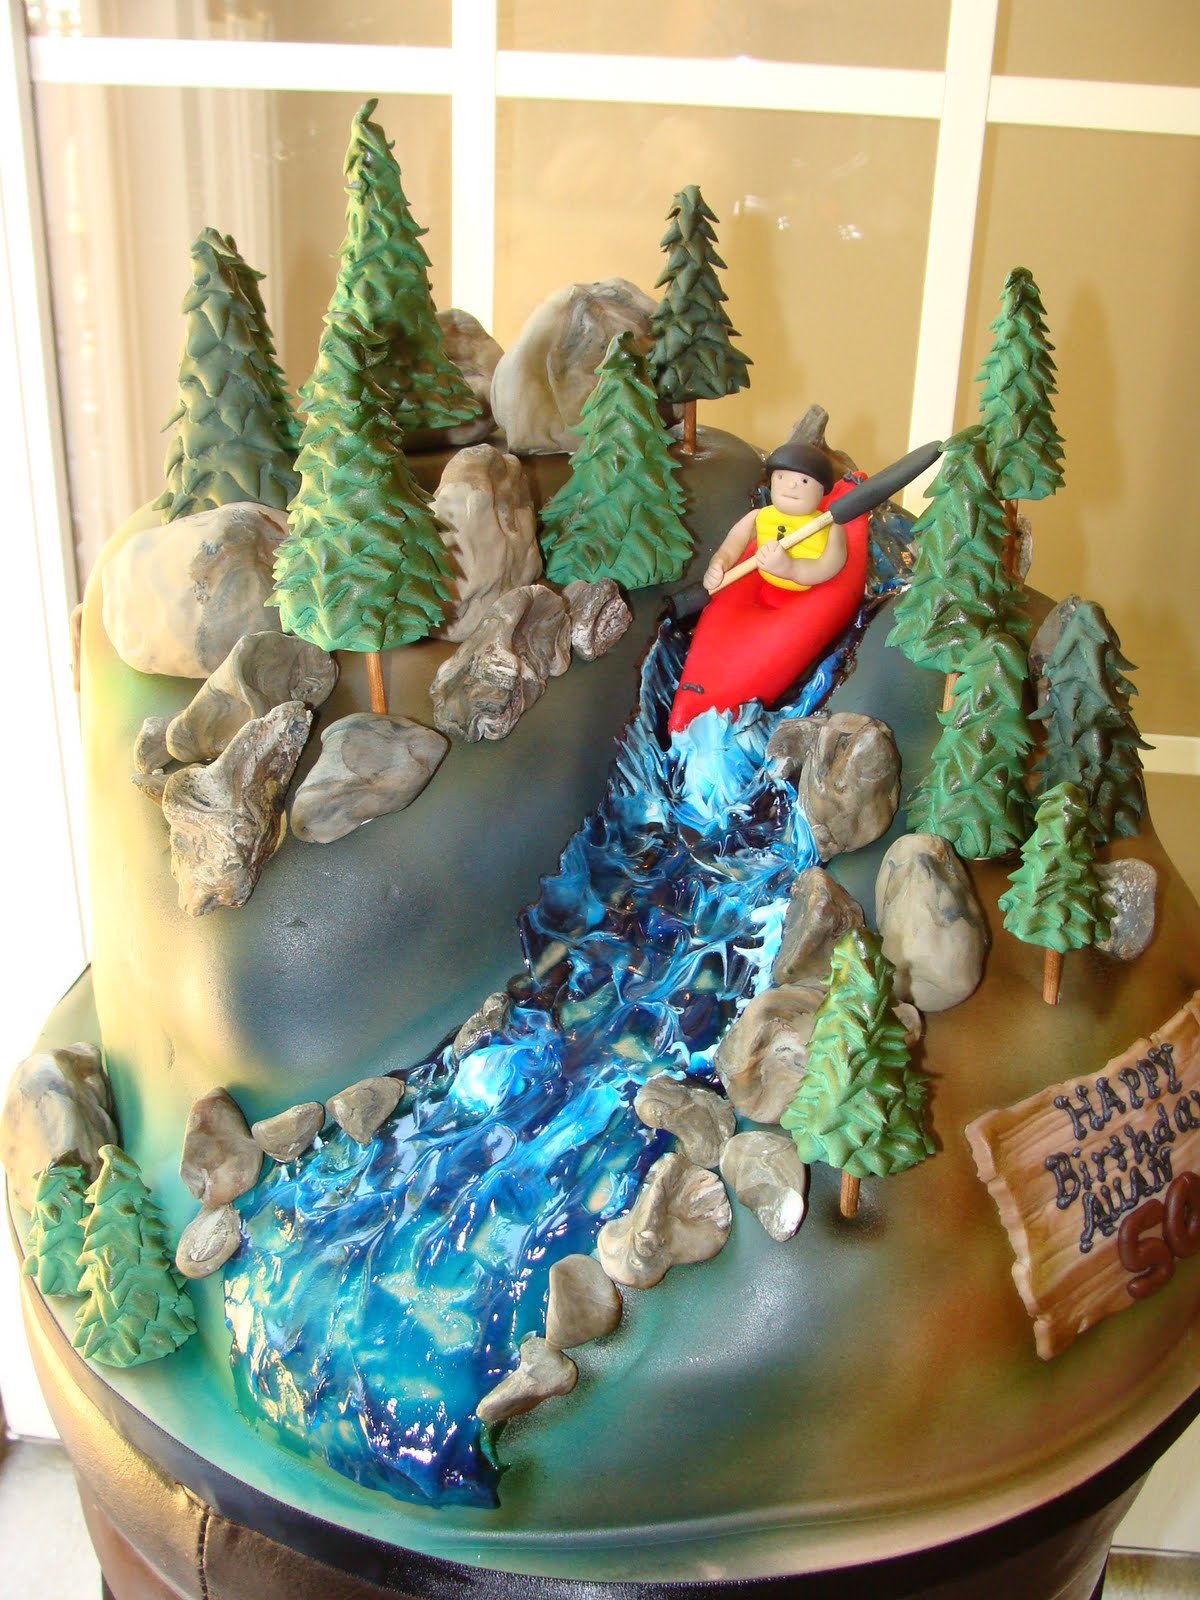 Cake Talk A Cake For A Kayaker